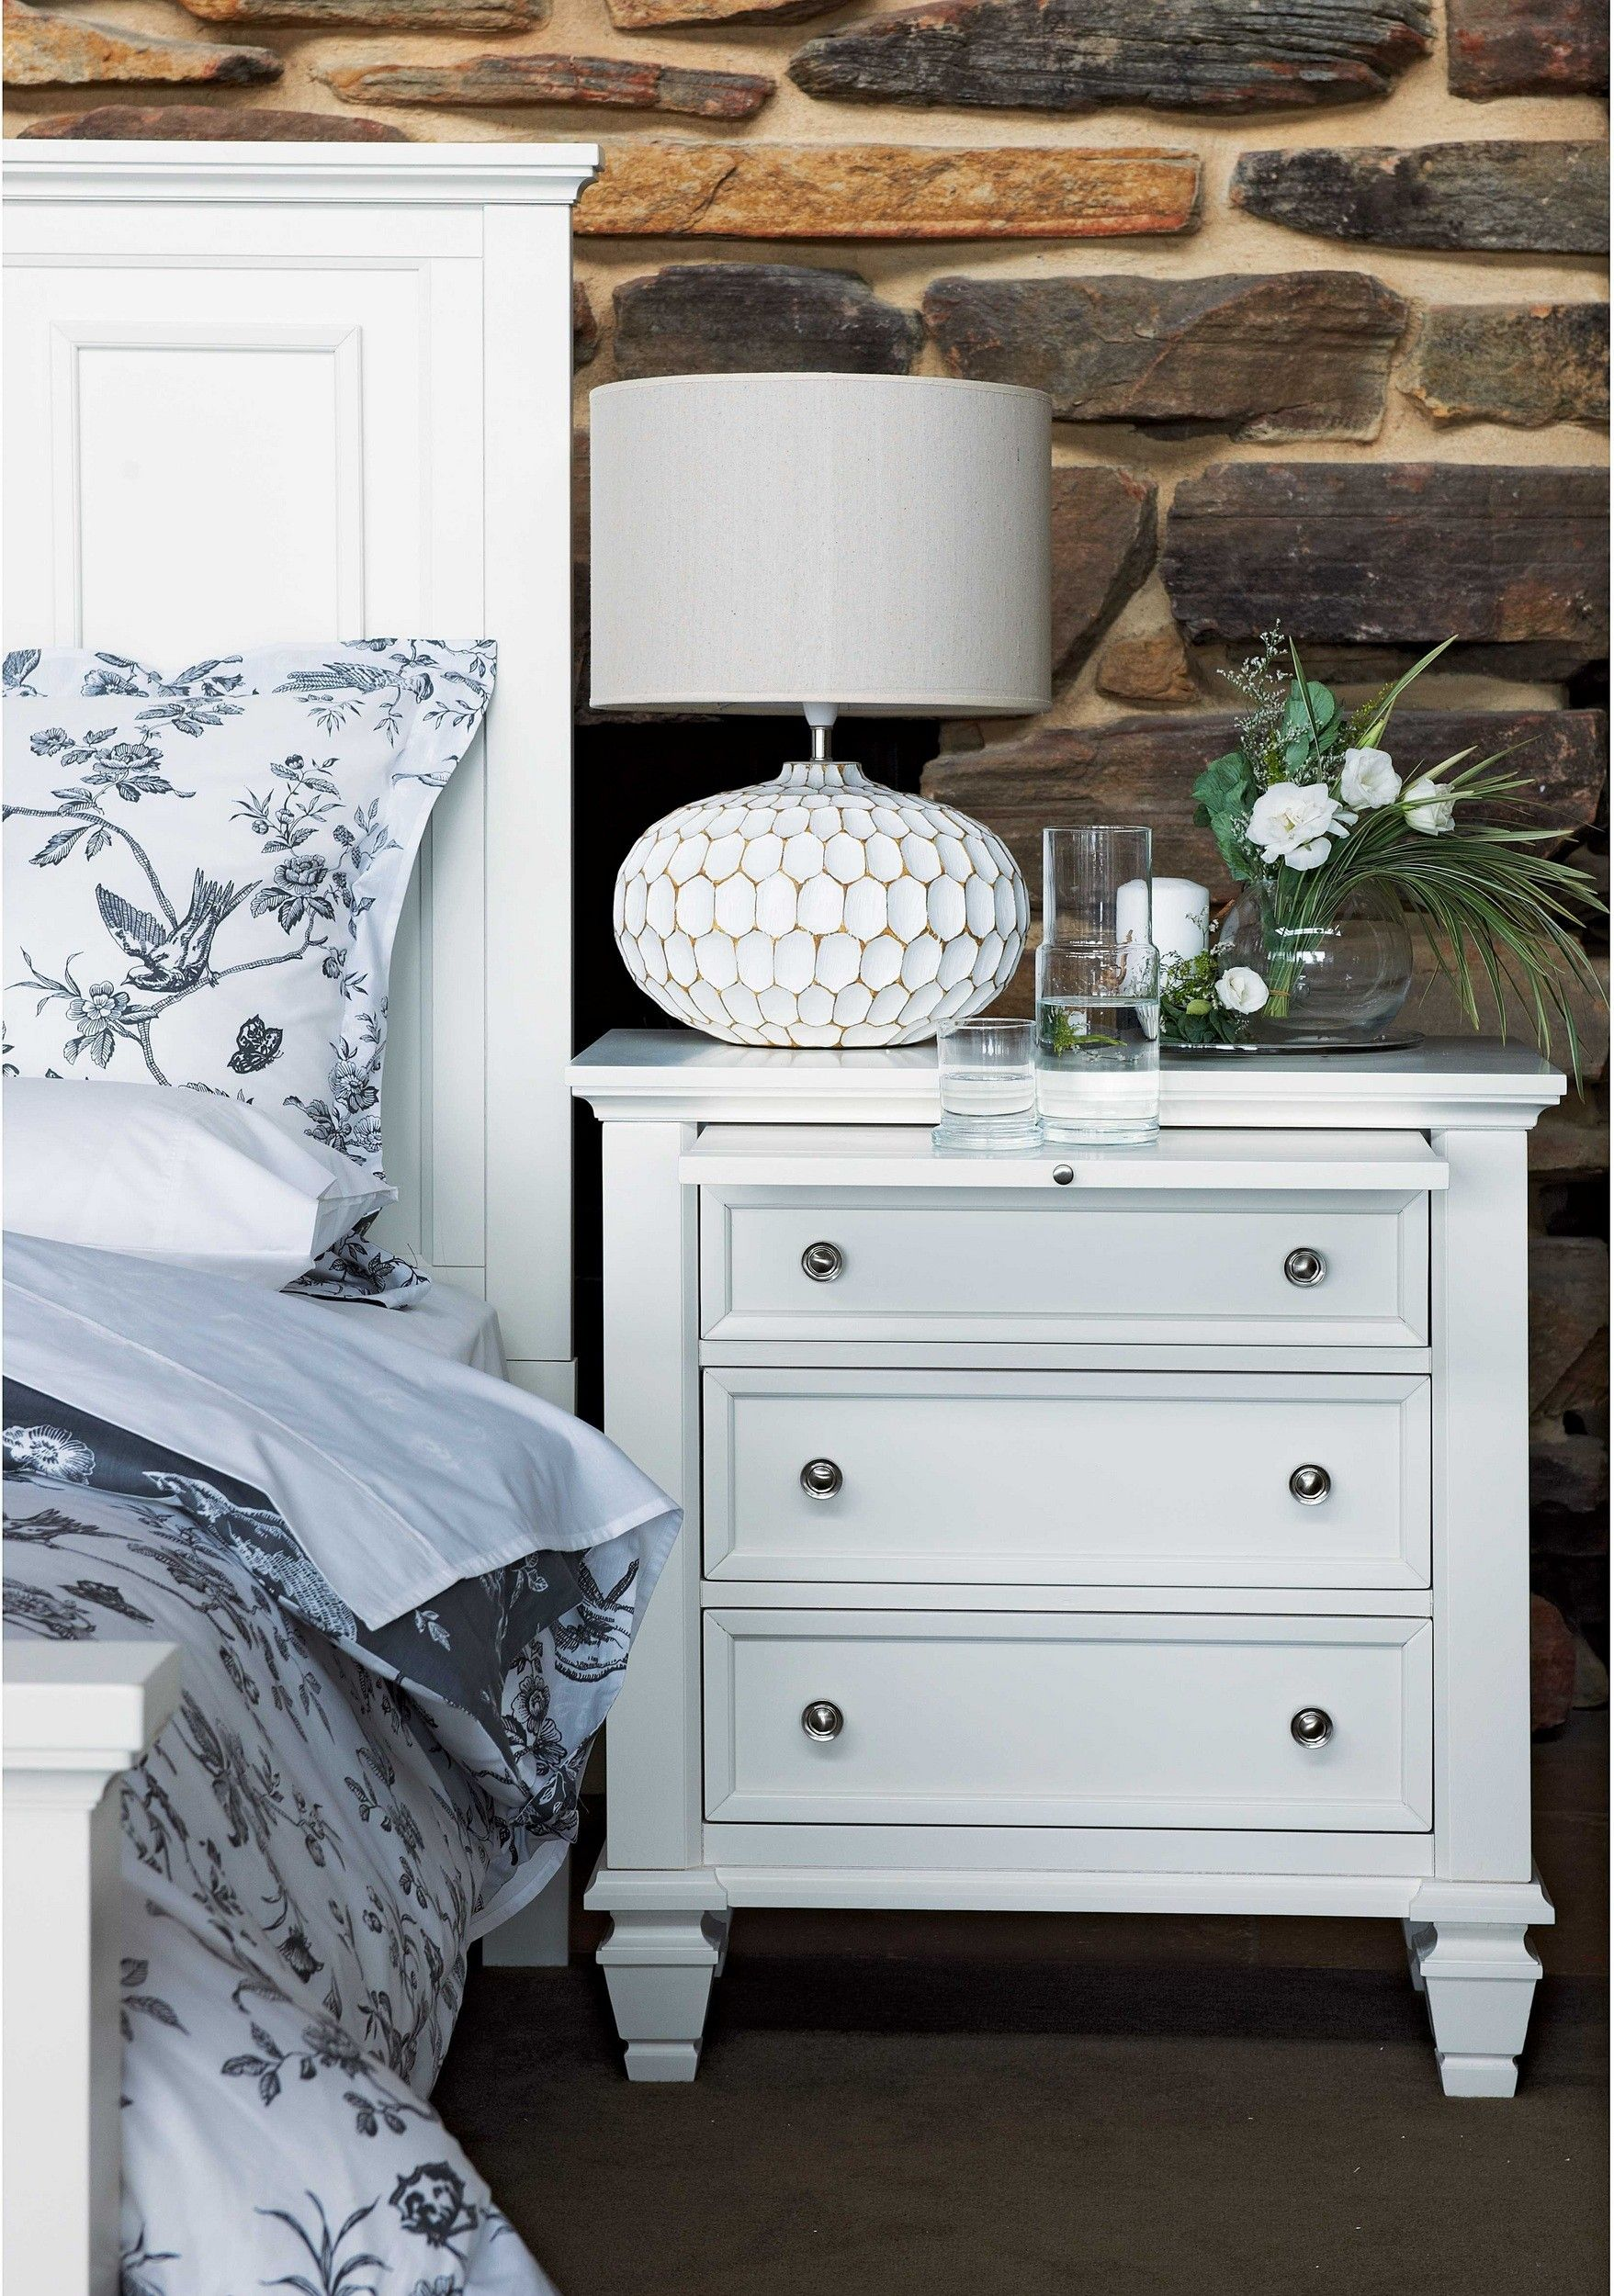 Glenmore Bedside Table | Table, Bedside table, Home decor